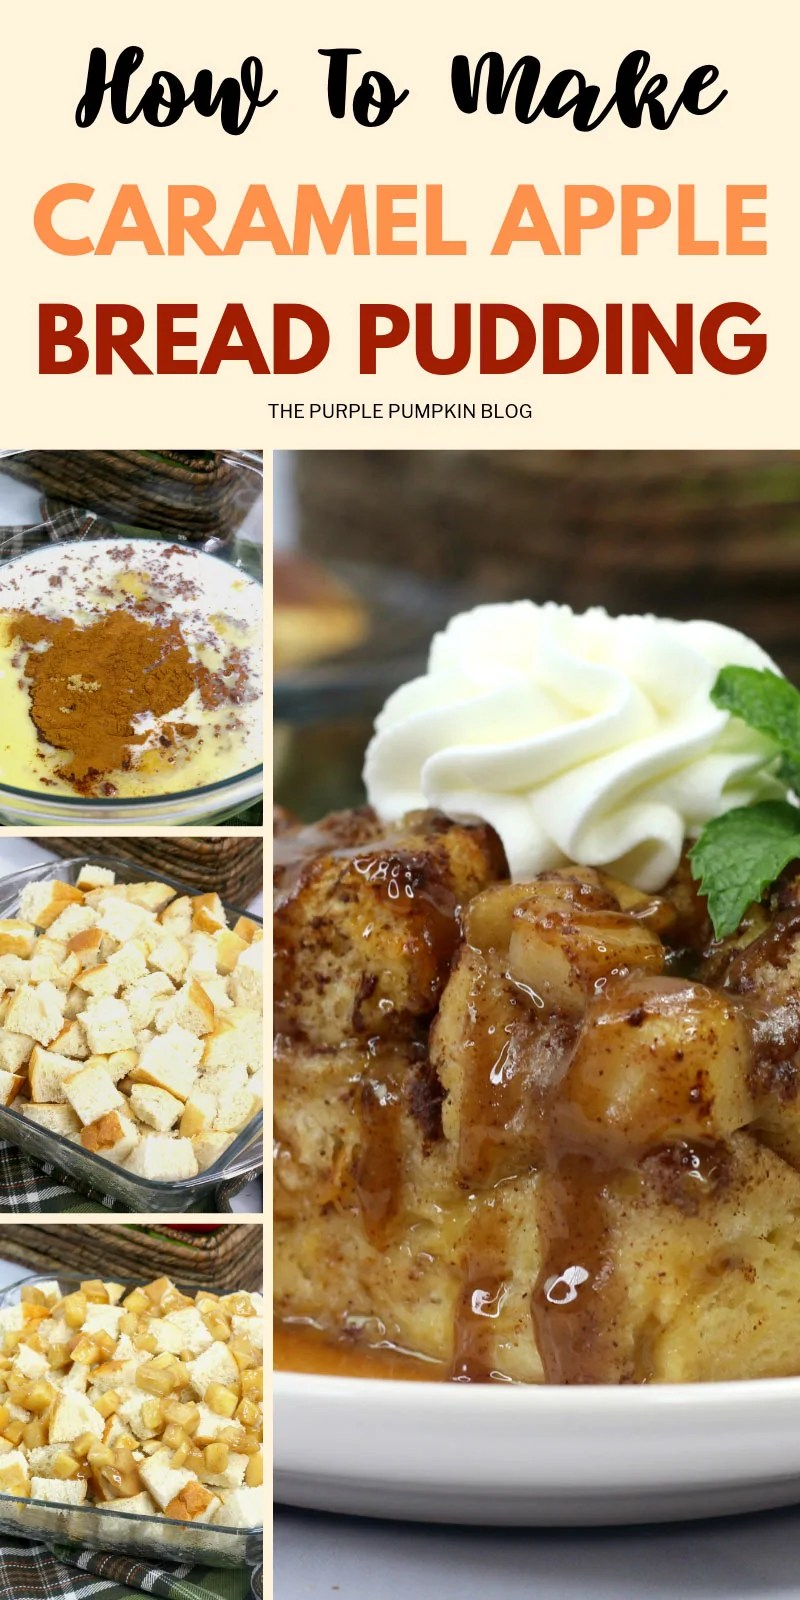 How to make caramel apple bread pudding